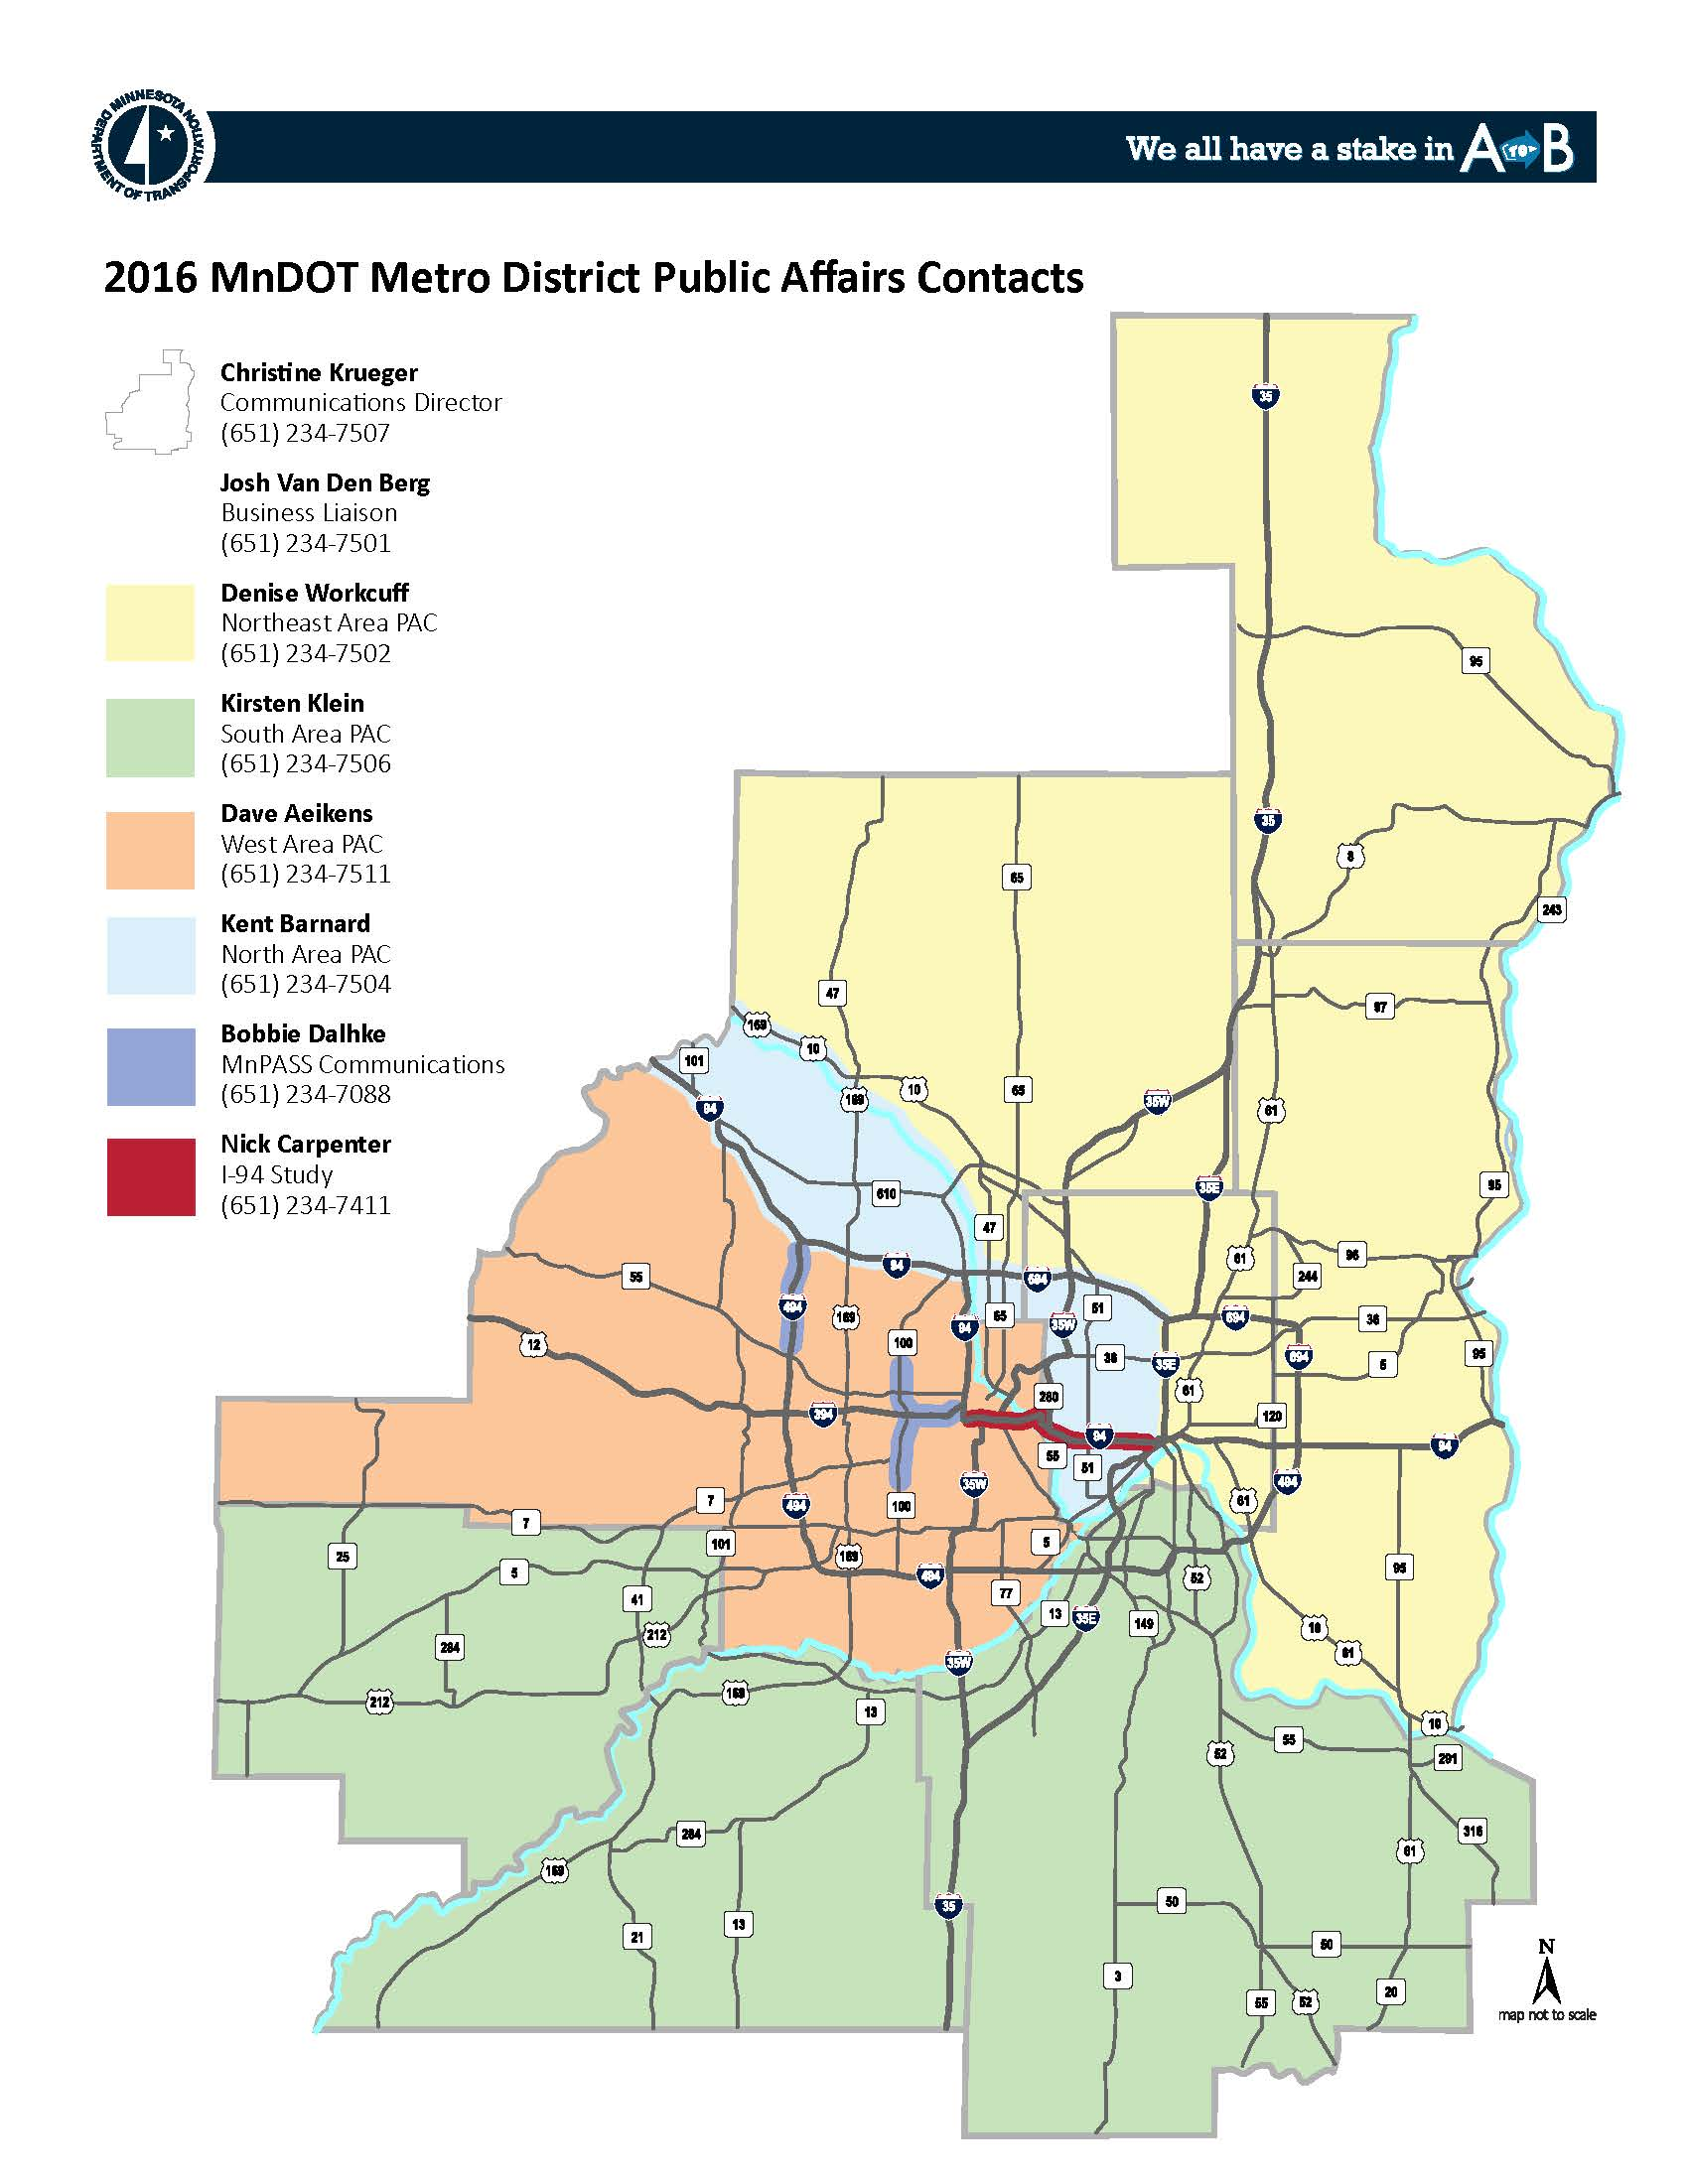 Contacts for Metro District